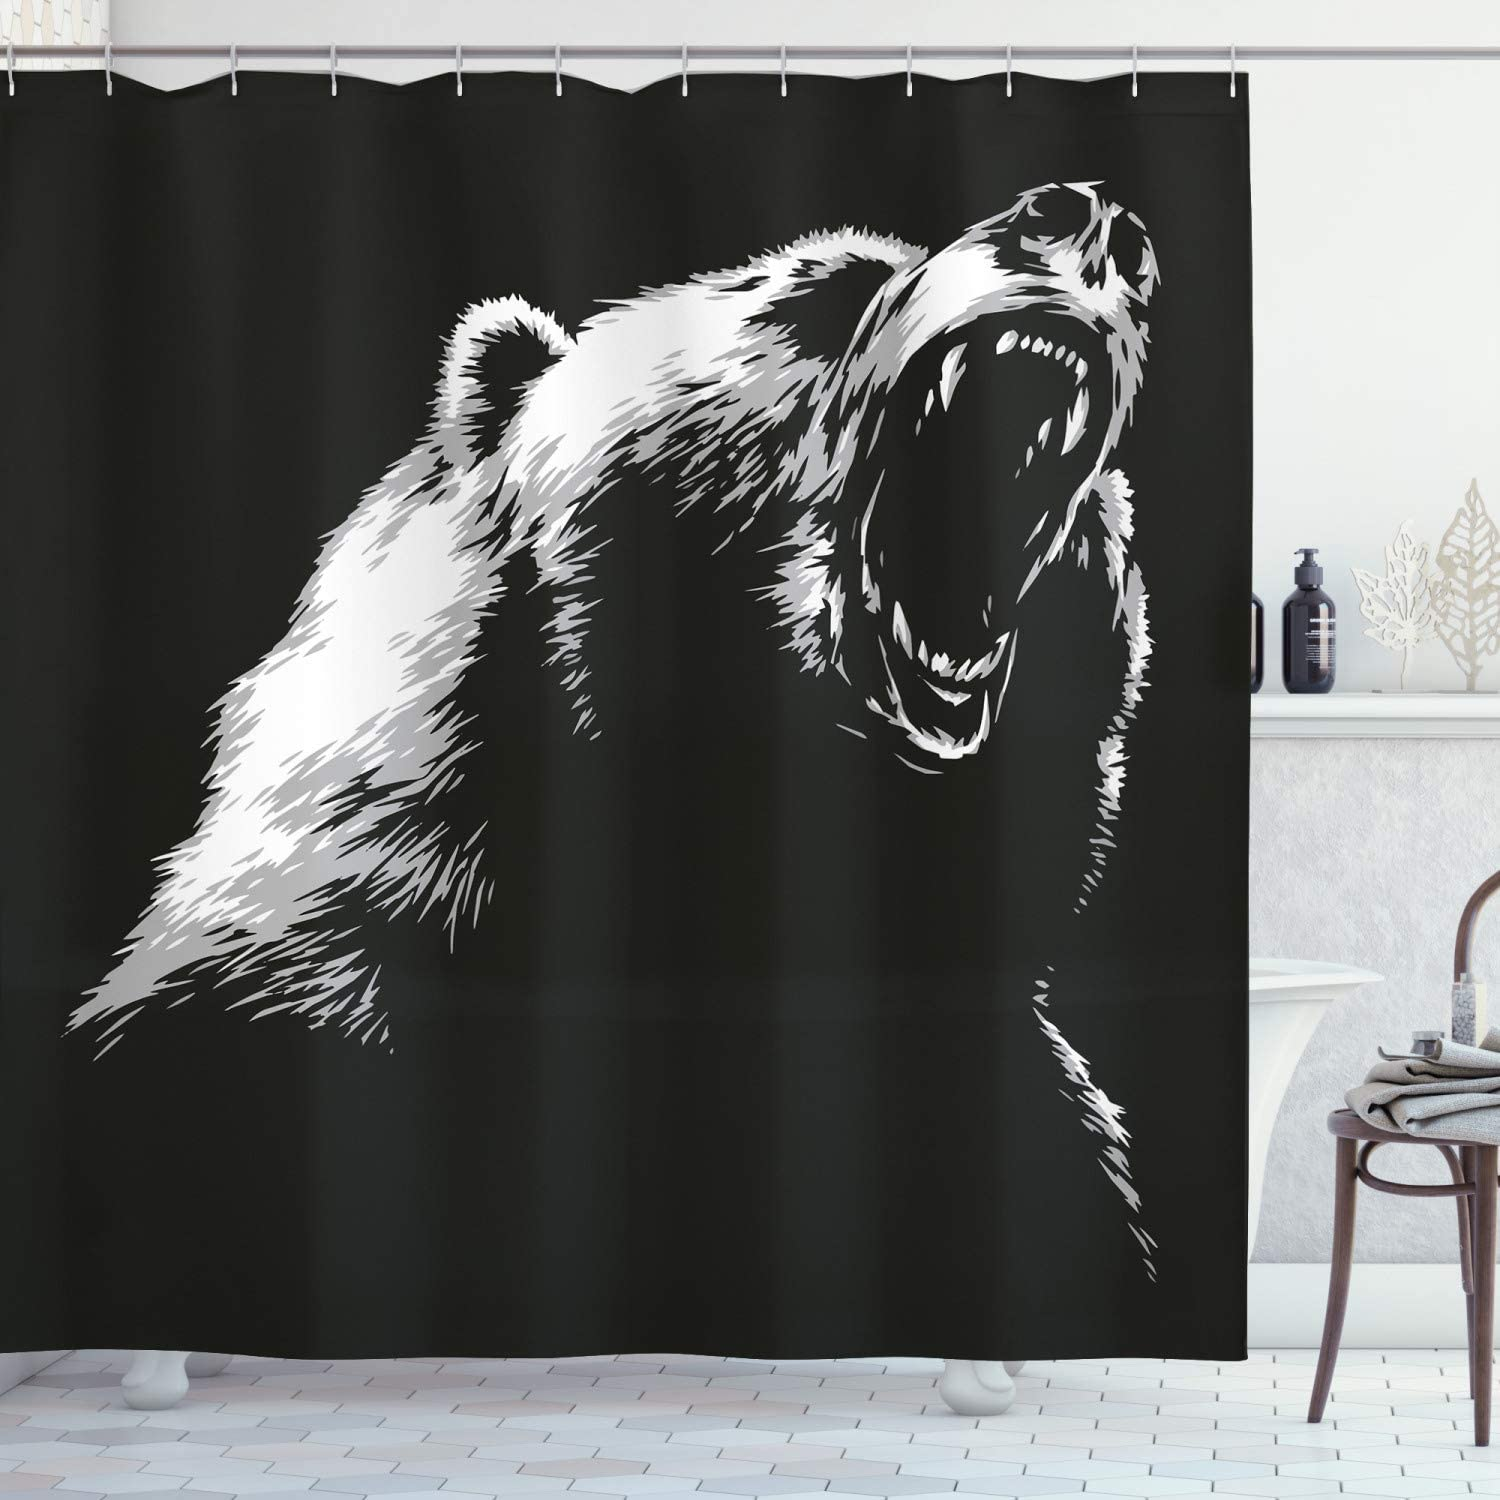 Ambesonne Bear Shower Curtain, Sketch Line Style Roaring Carnivore Fur and Fangs Aggressive Predator Fauna, Cloth Fabric Bathroom Decor Set with Hooks, 70